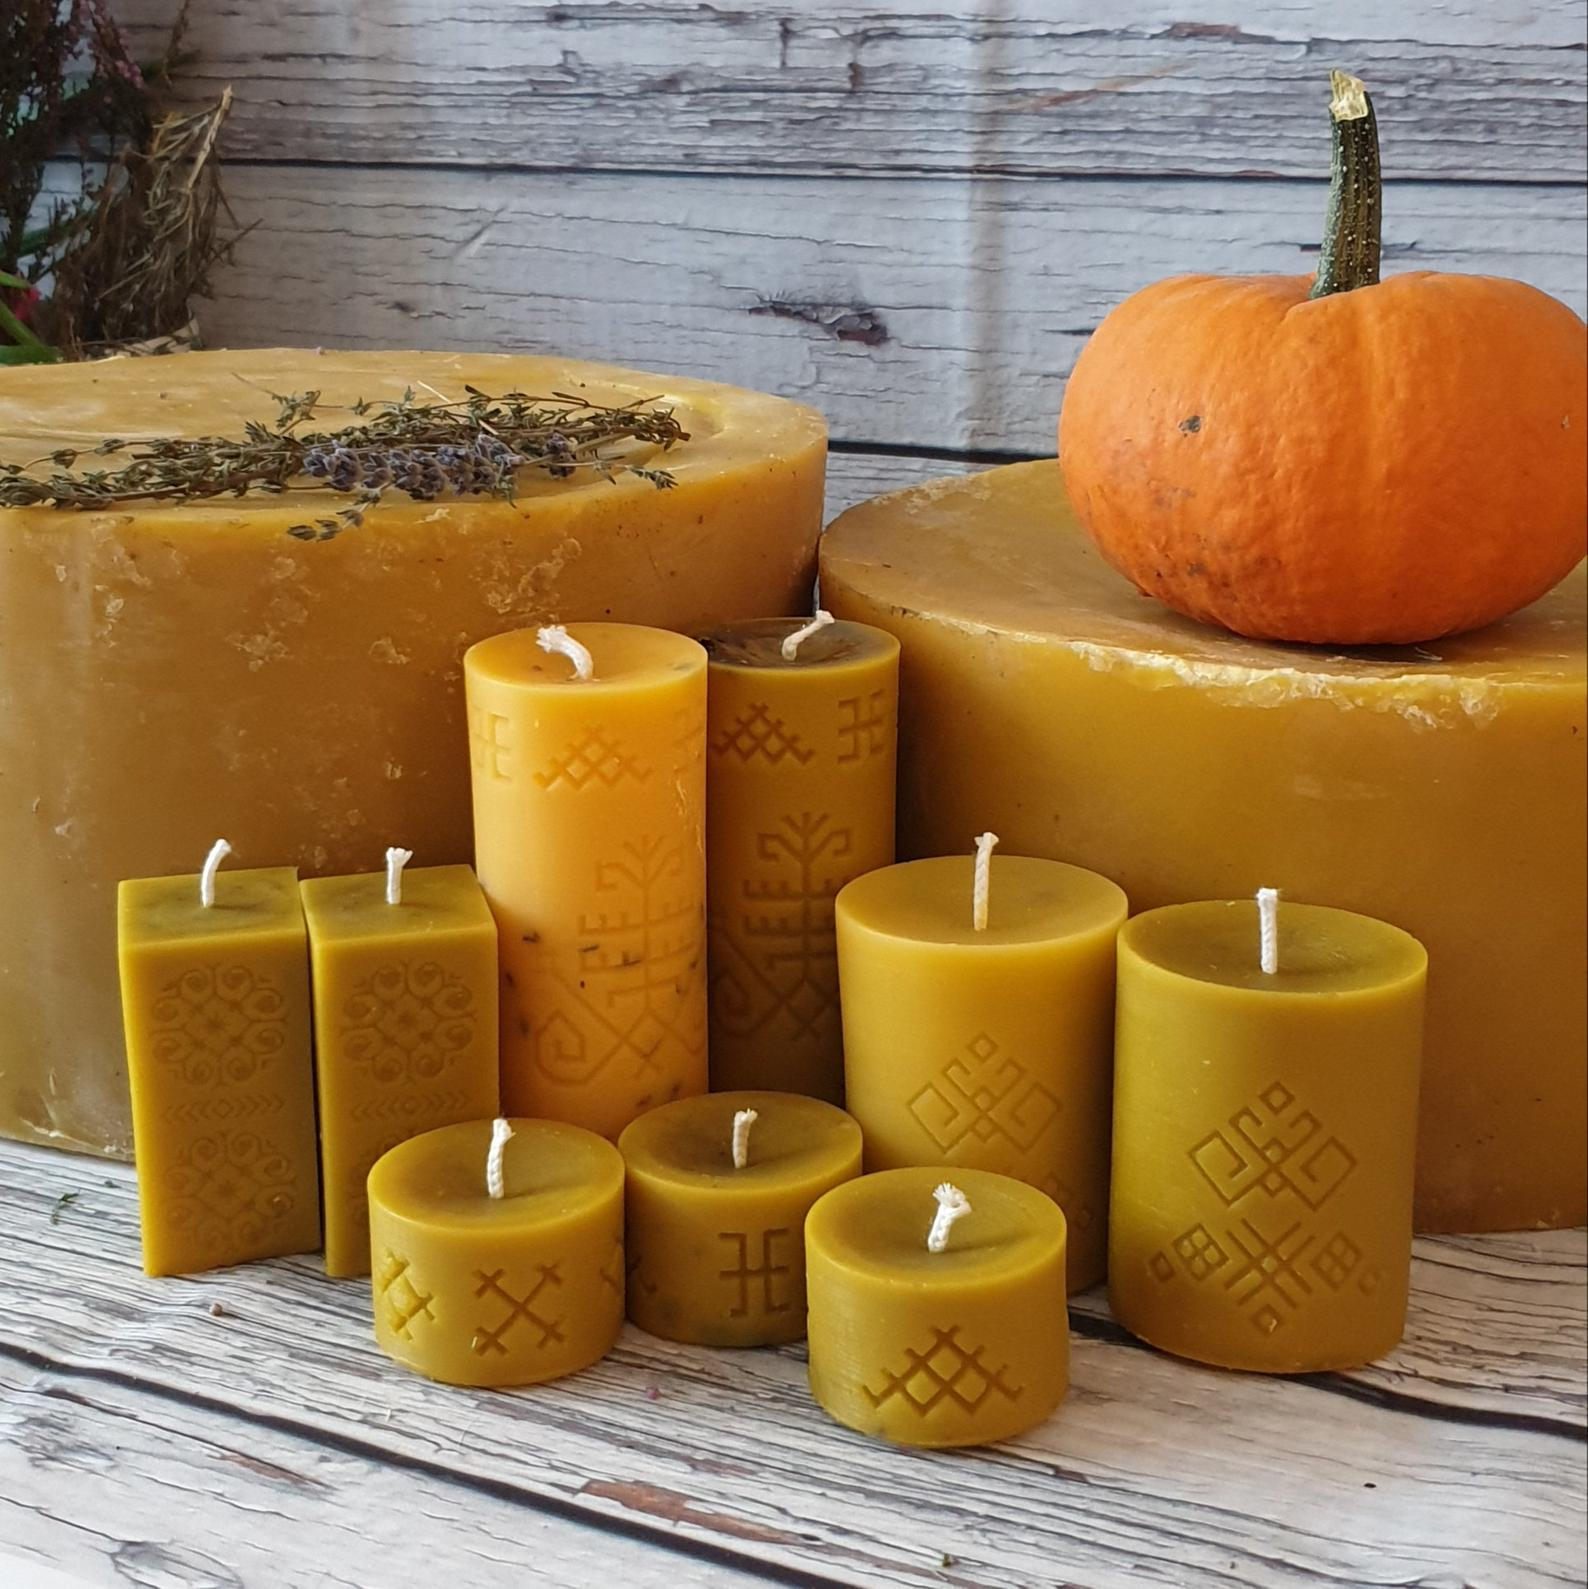 Beyond the light. Explore types of candles